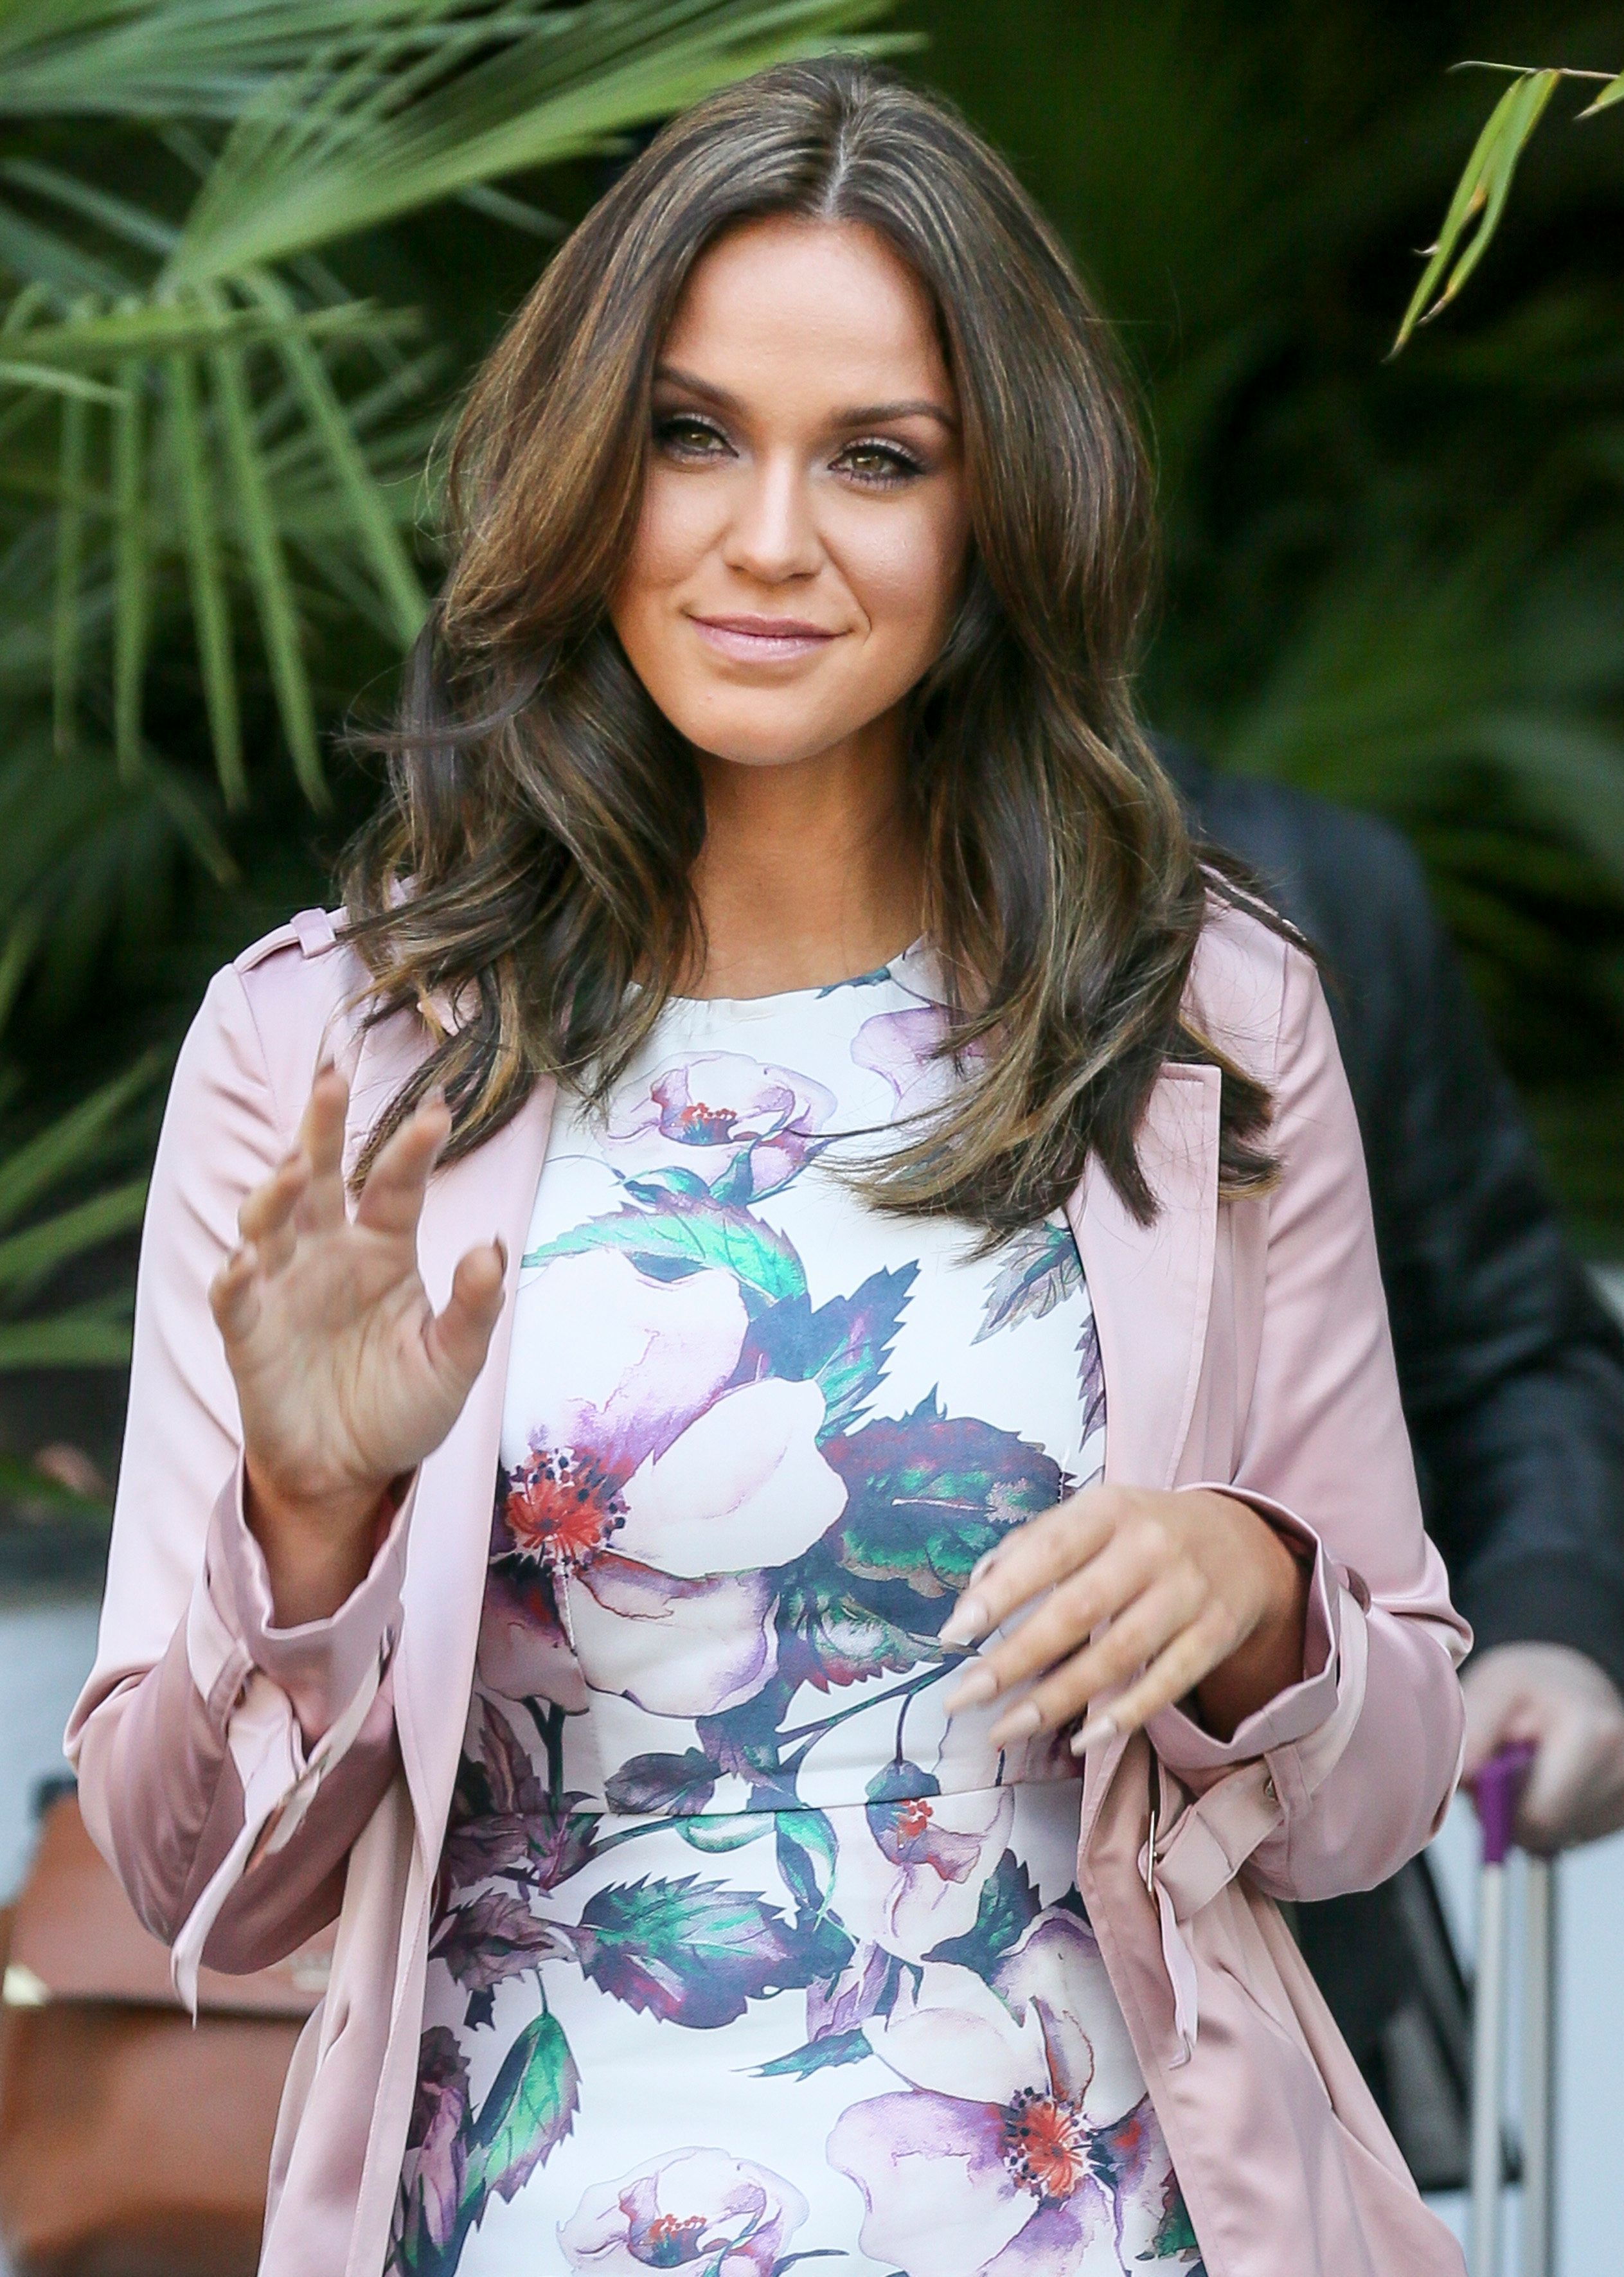 Vicky Pattison could replace Laura Whitmore on 'I'm A Celebrity... Get Me Out Of Here!